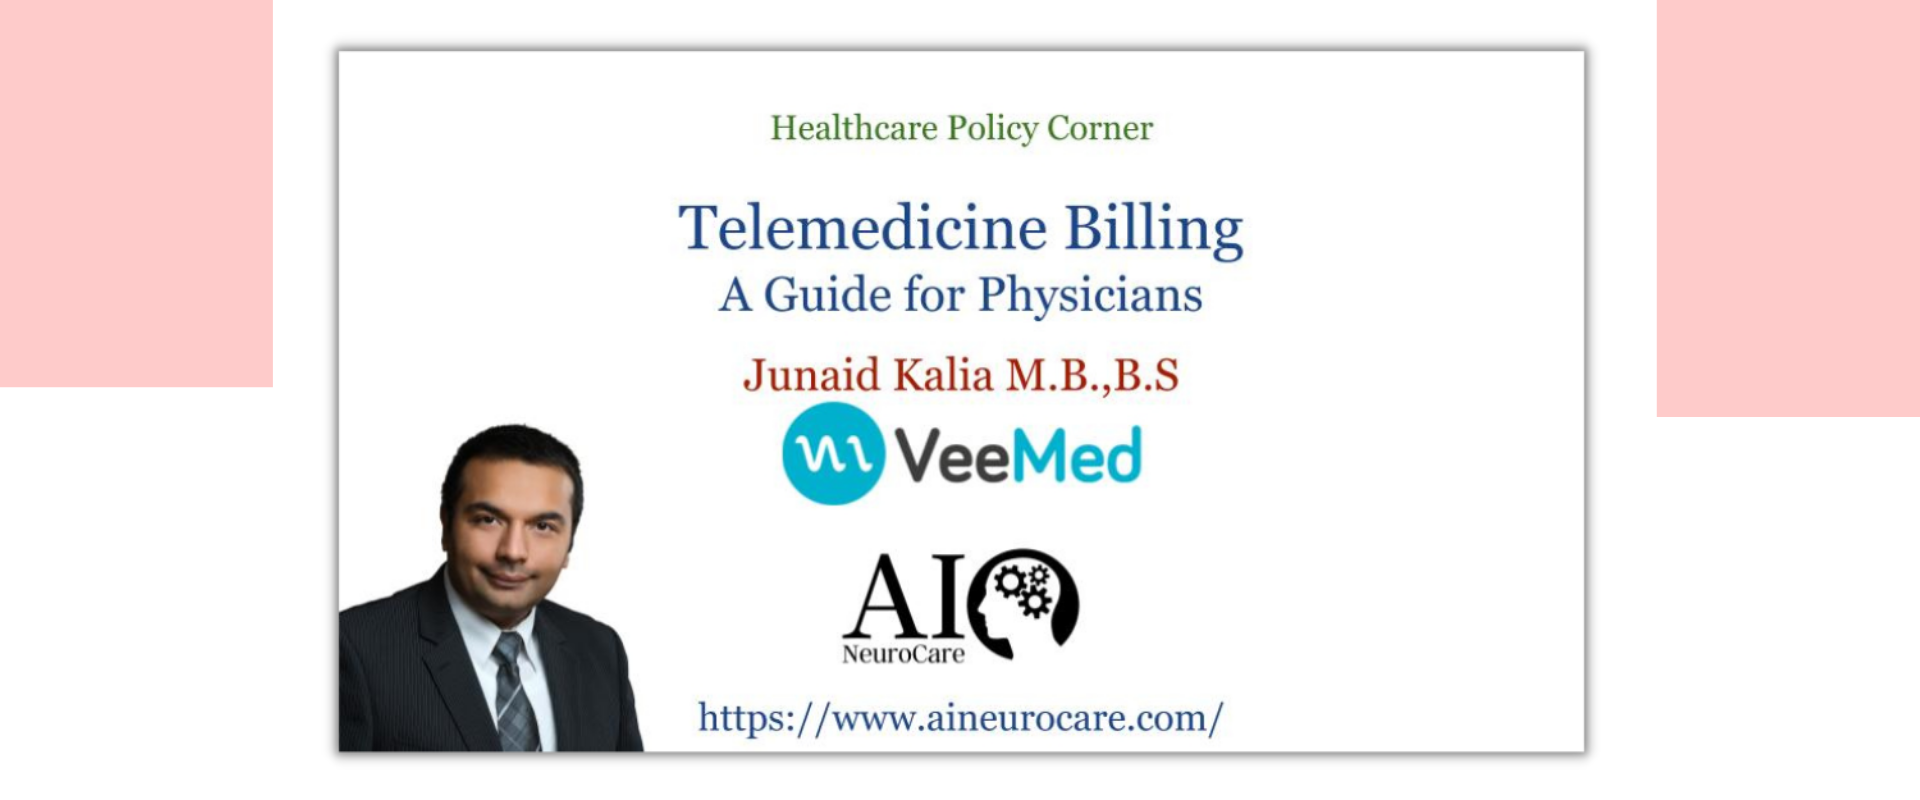 Telemedicine Billing - A Guide for Physicians